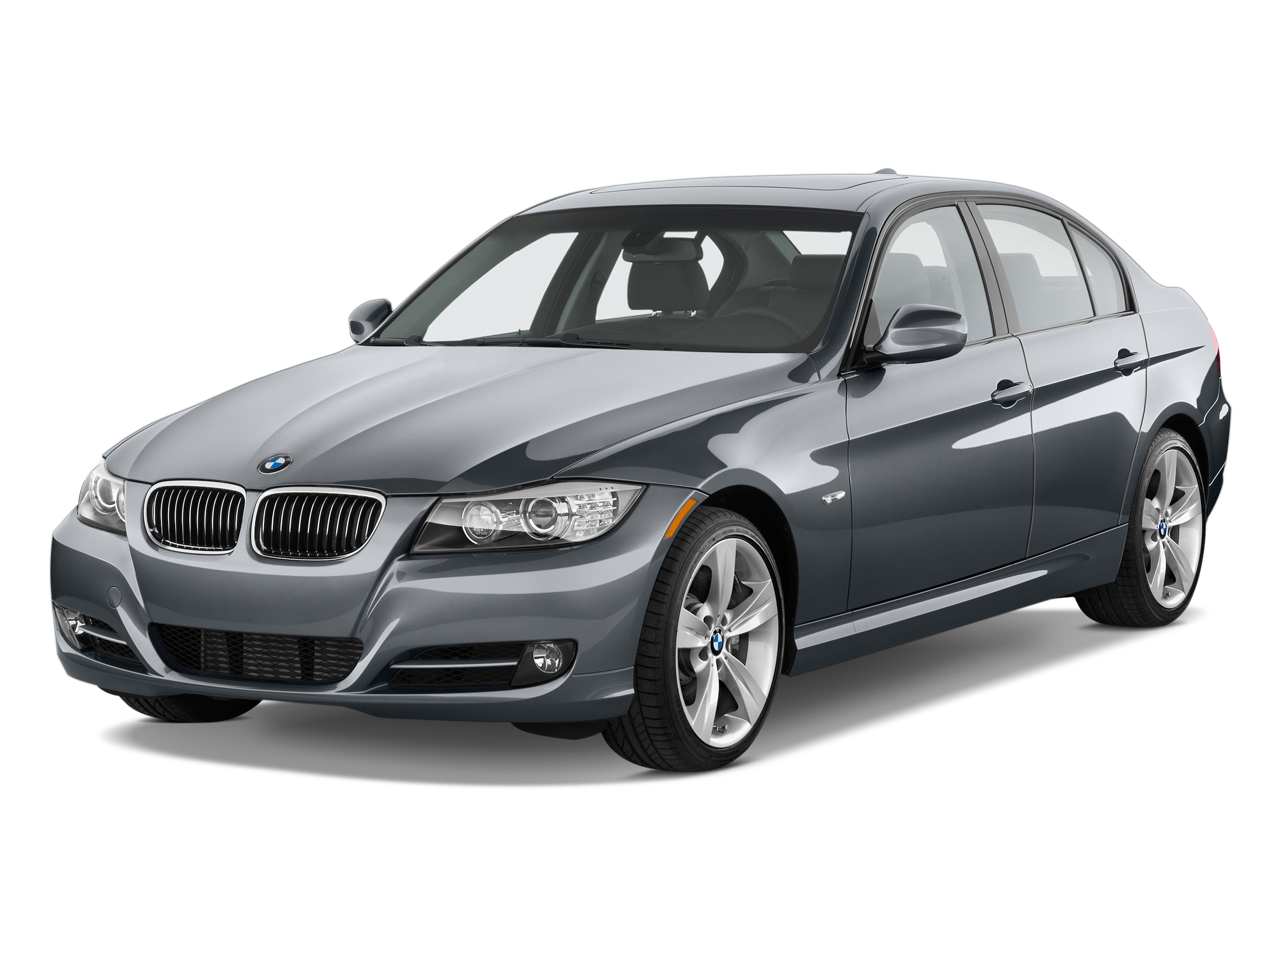 2011 bmw 3 series review and news motorauthority. Black Bedroom Furniture Sets. Home Design Ideas